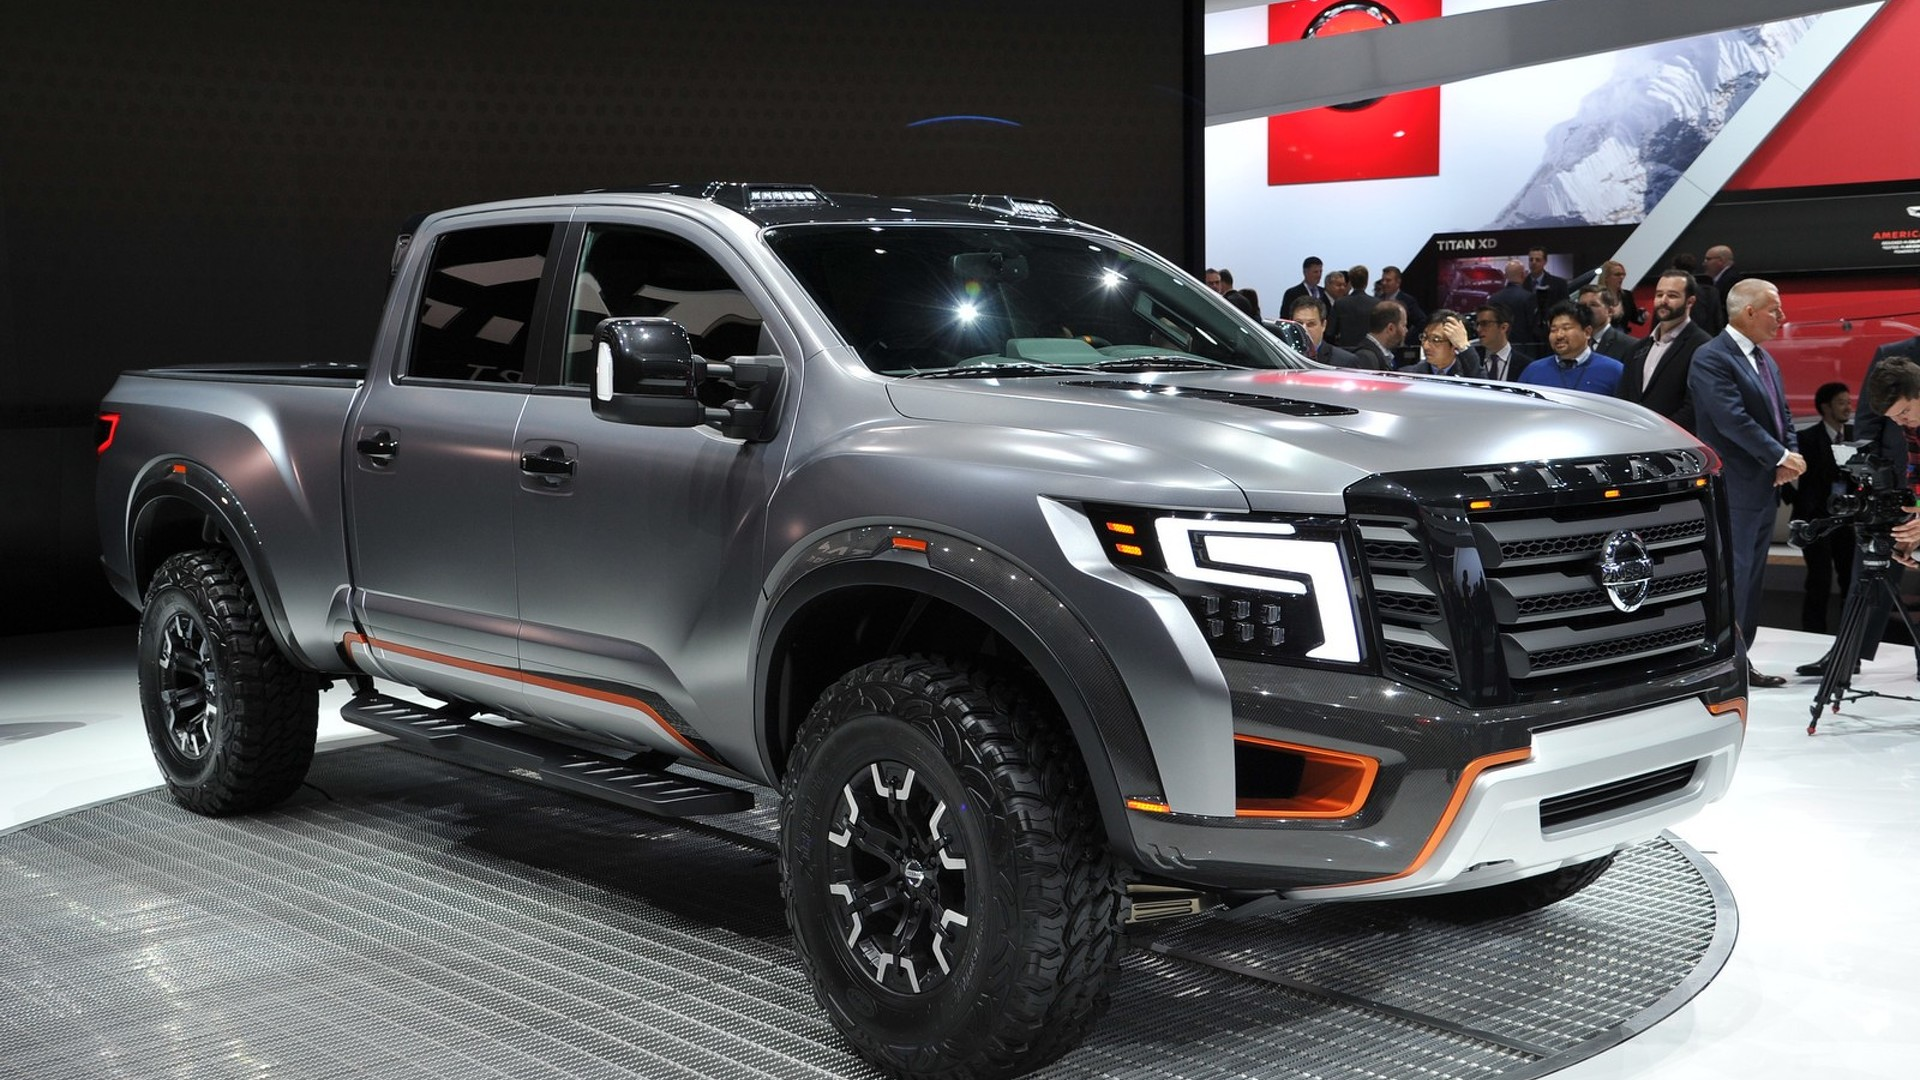 Nissan S Manly Titan Warrior Concept Is Mad Max Material